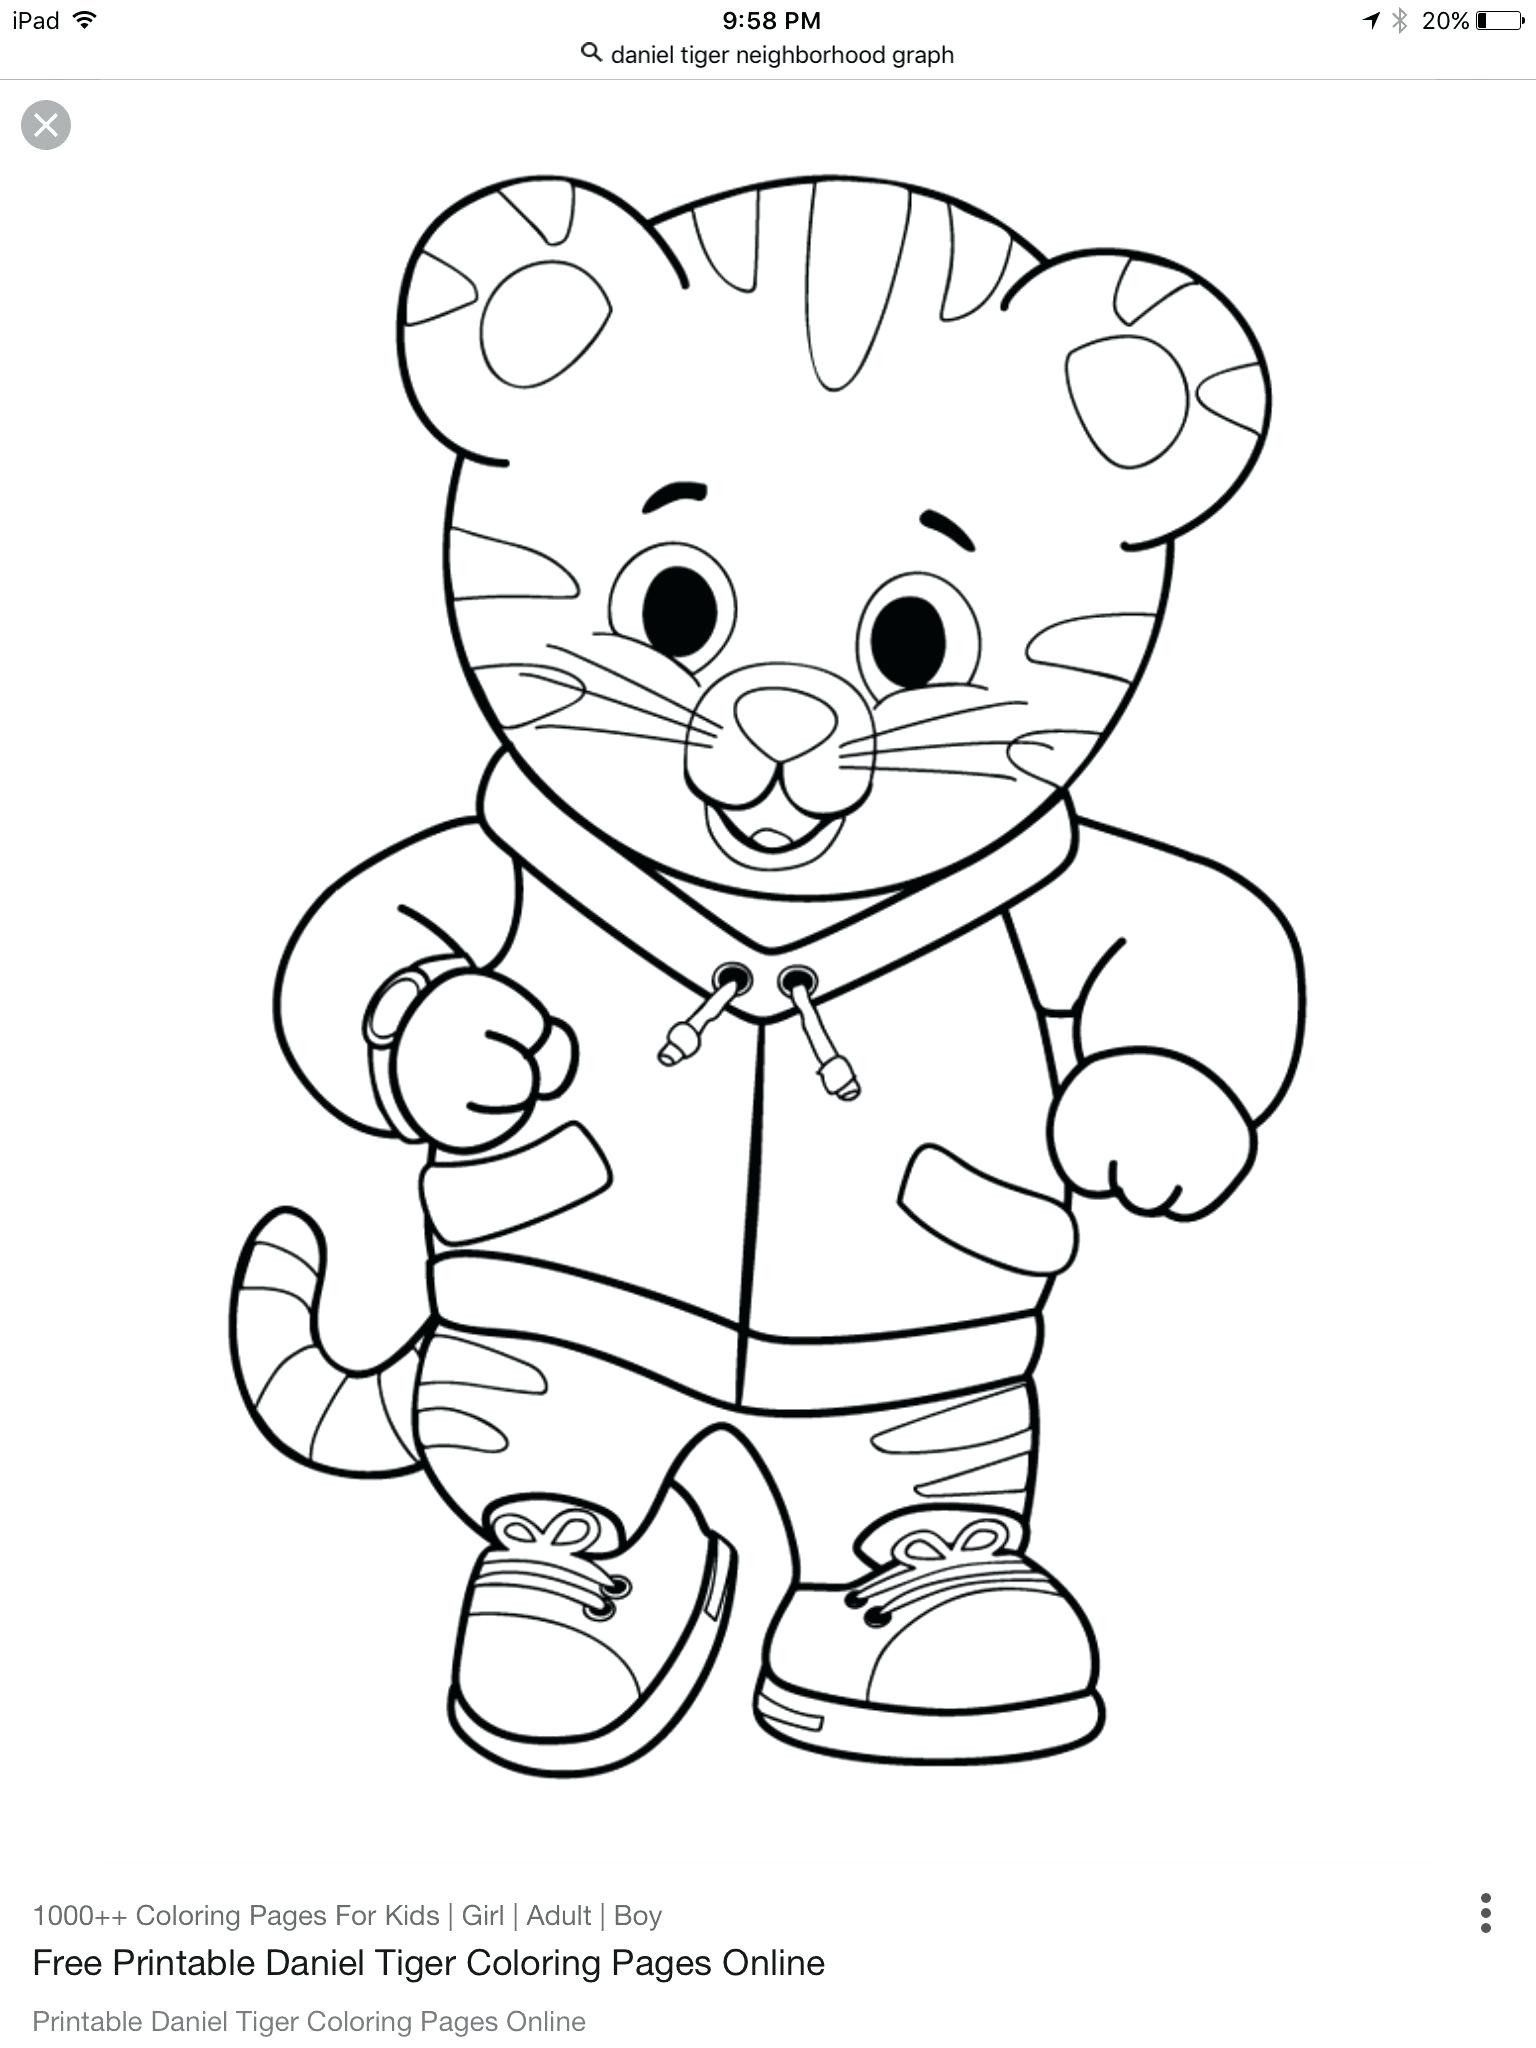 Daniel Tiger Coloring Pages Awesome Dear Daniel Coloring Pages Tedpaper Daniel Tiger S Neighborhood Daniel Tiger Birthday Party Daniel Tiger Birthday